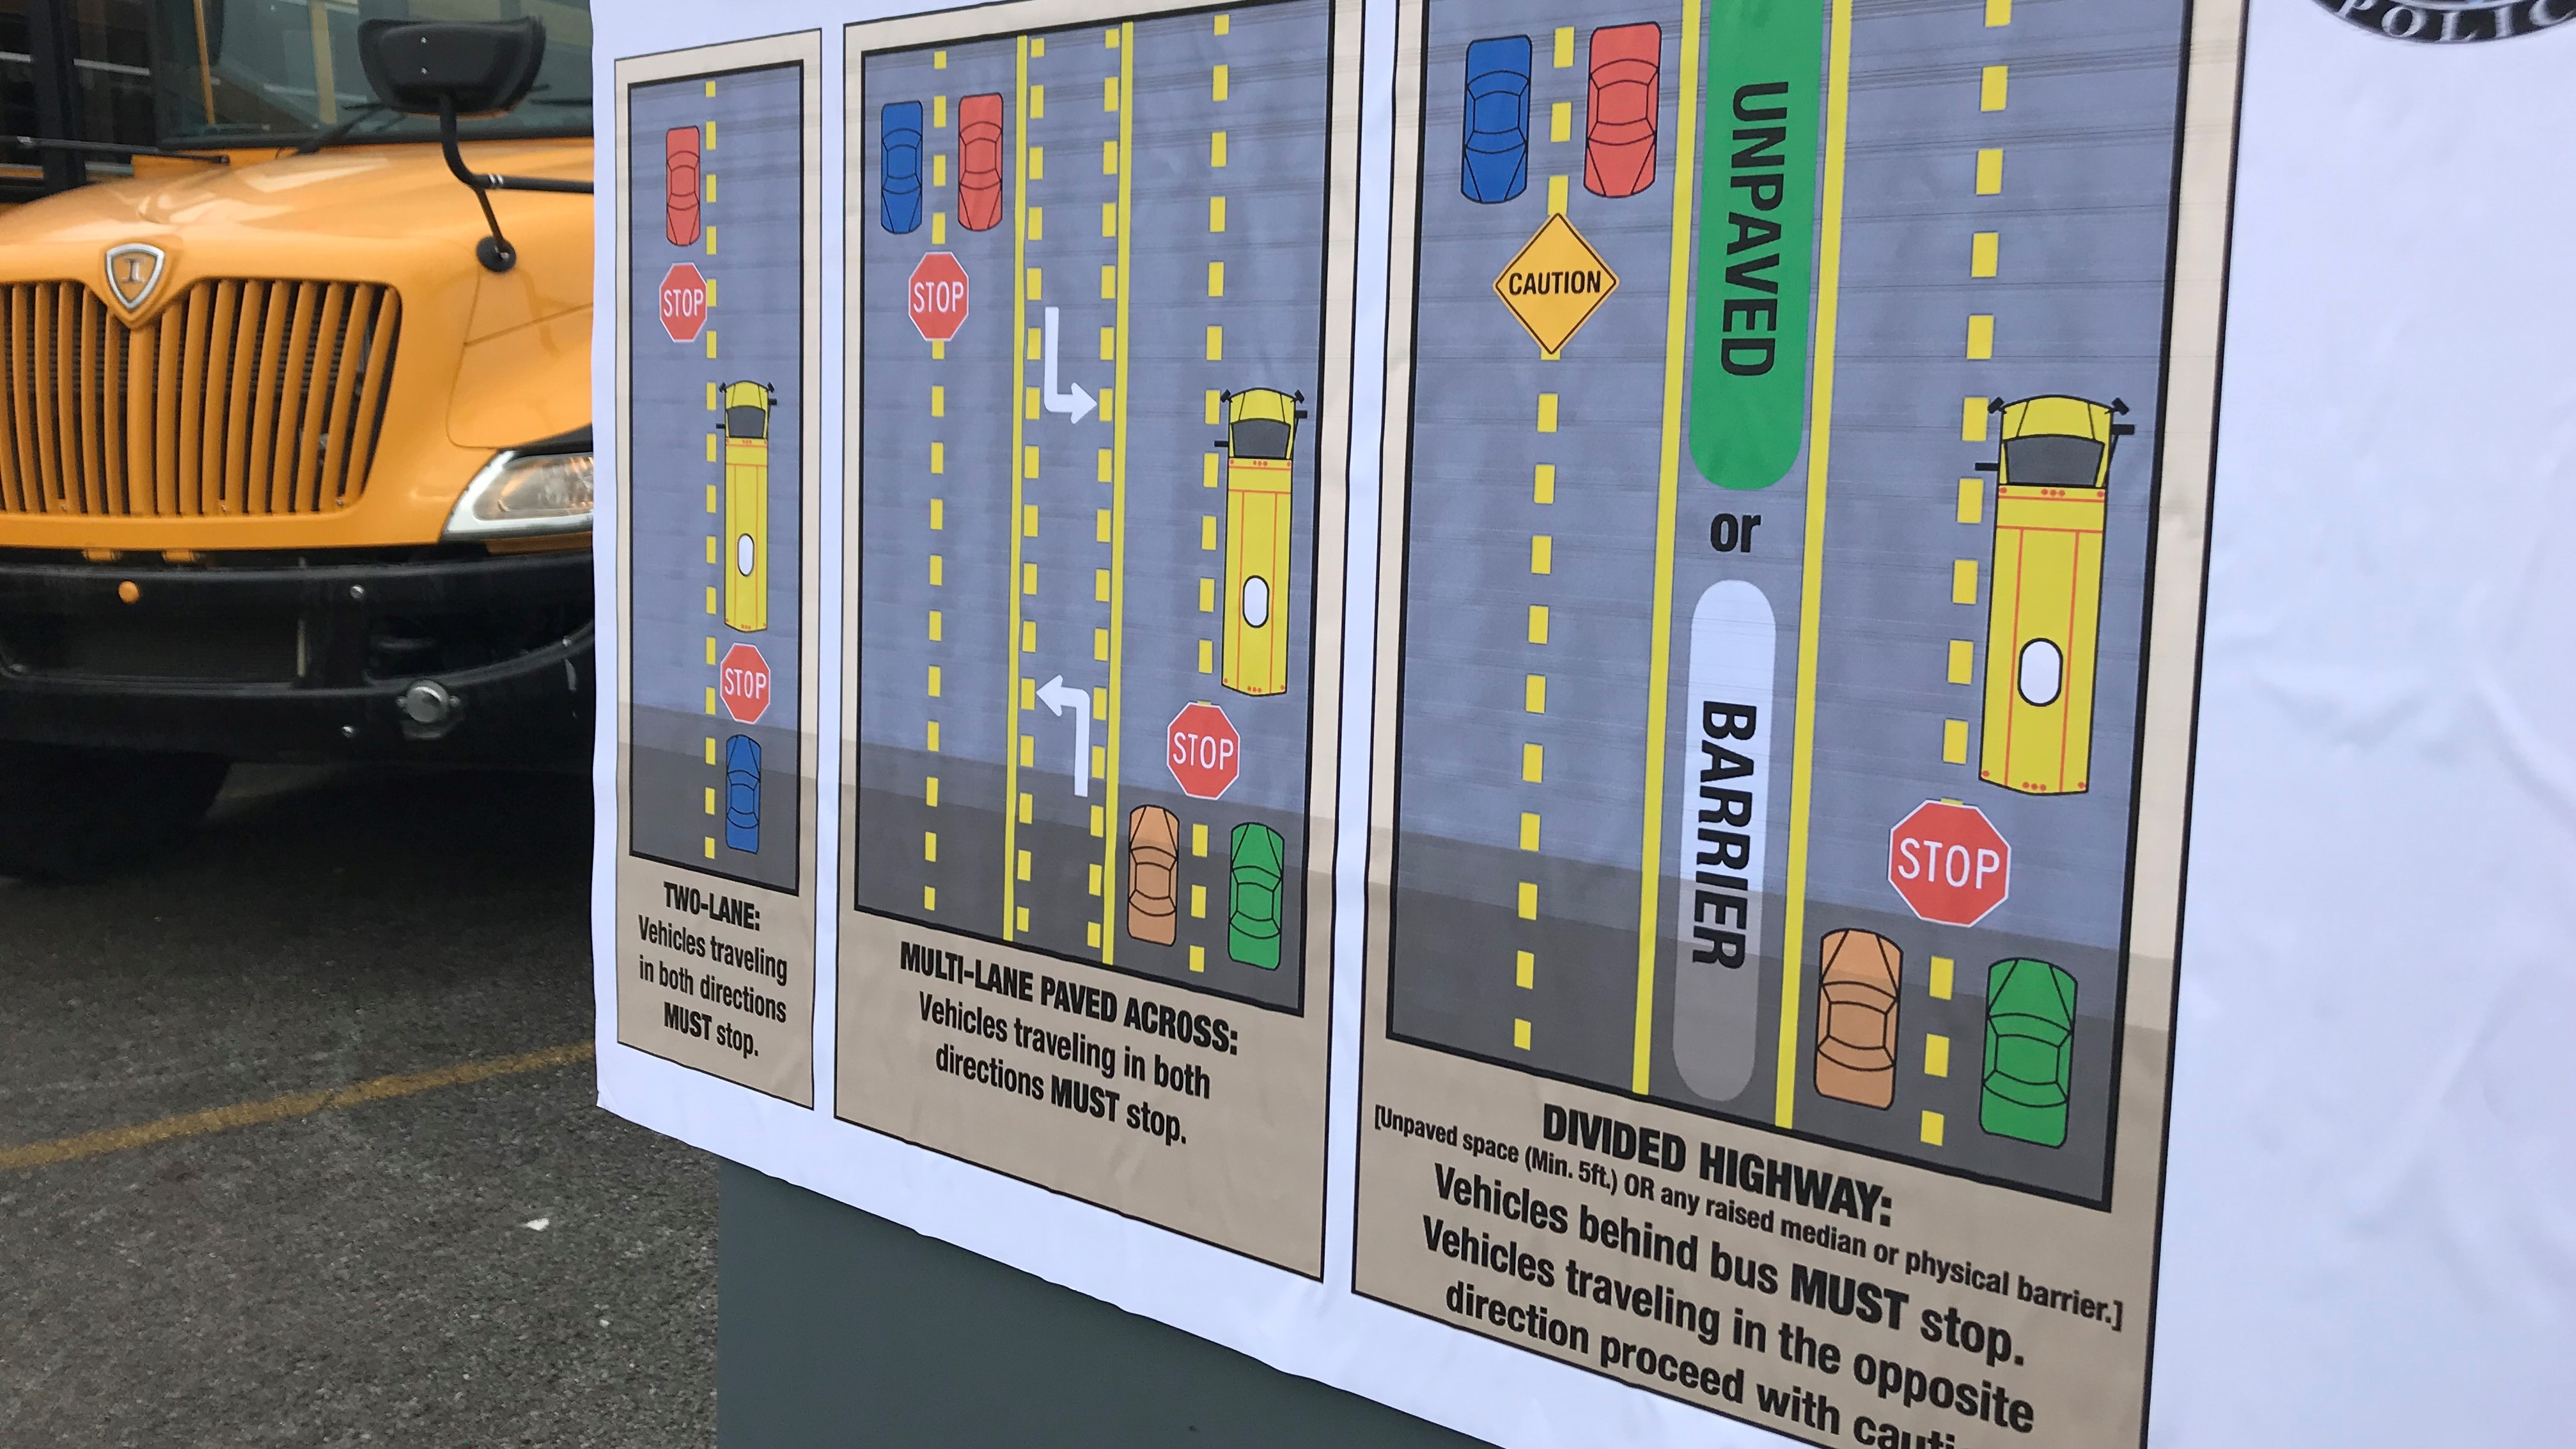 A poster highlights the rules that govern stopping for school buses.